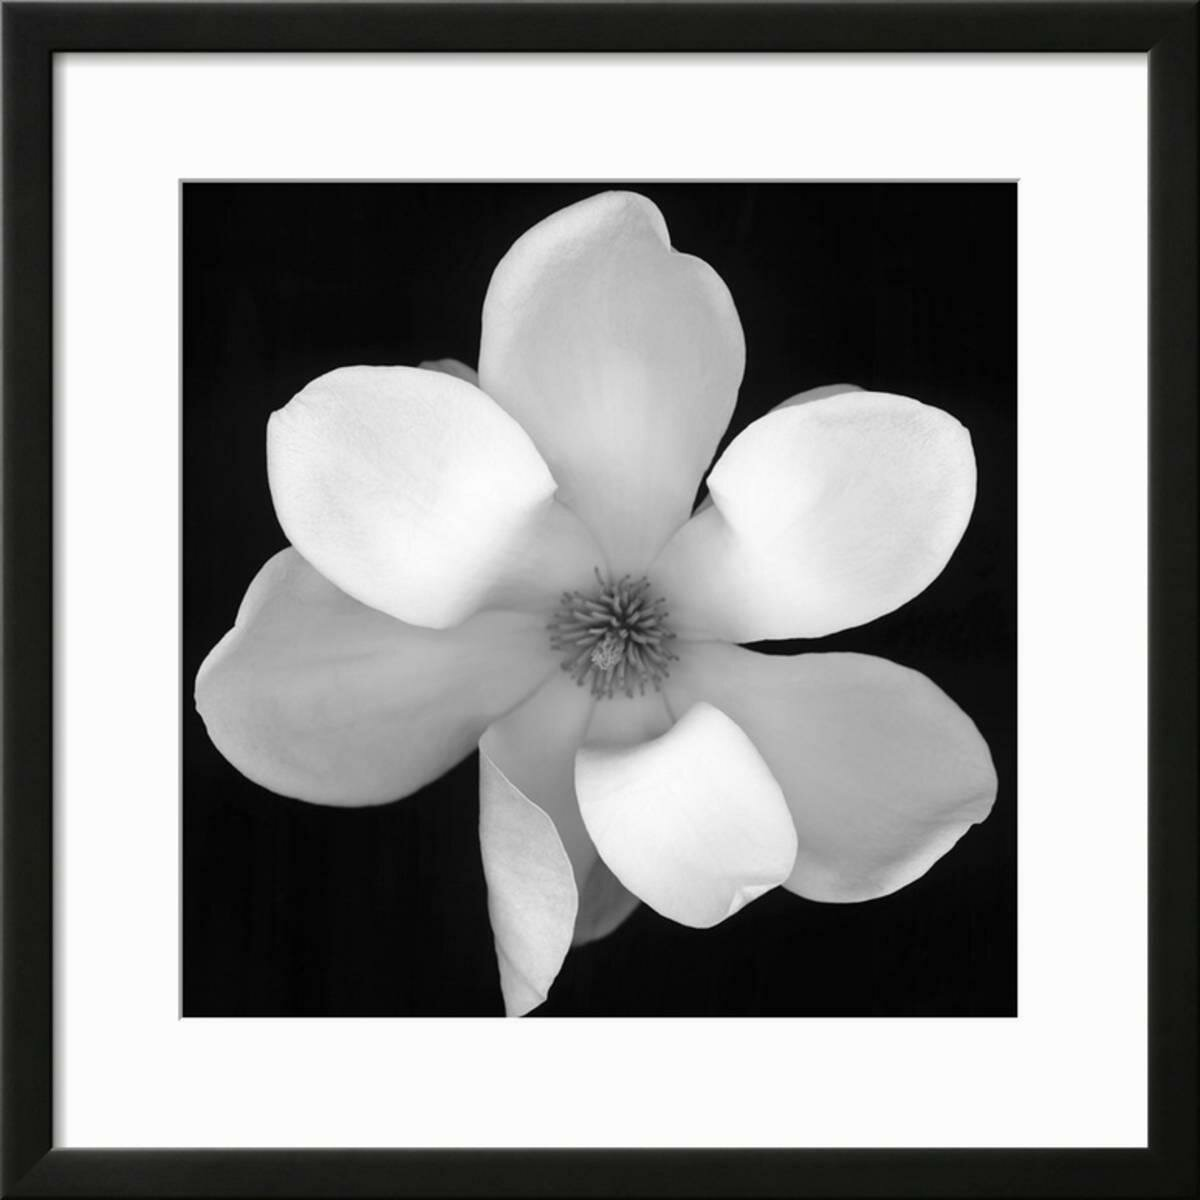 Ebern Designs Black And White Magnolia Flower Framed Photographic